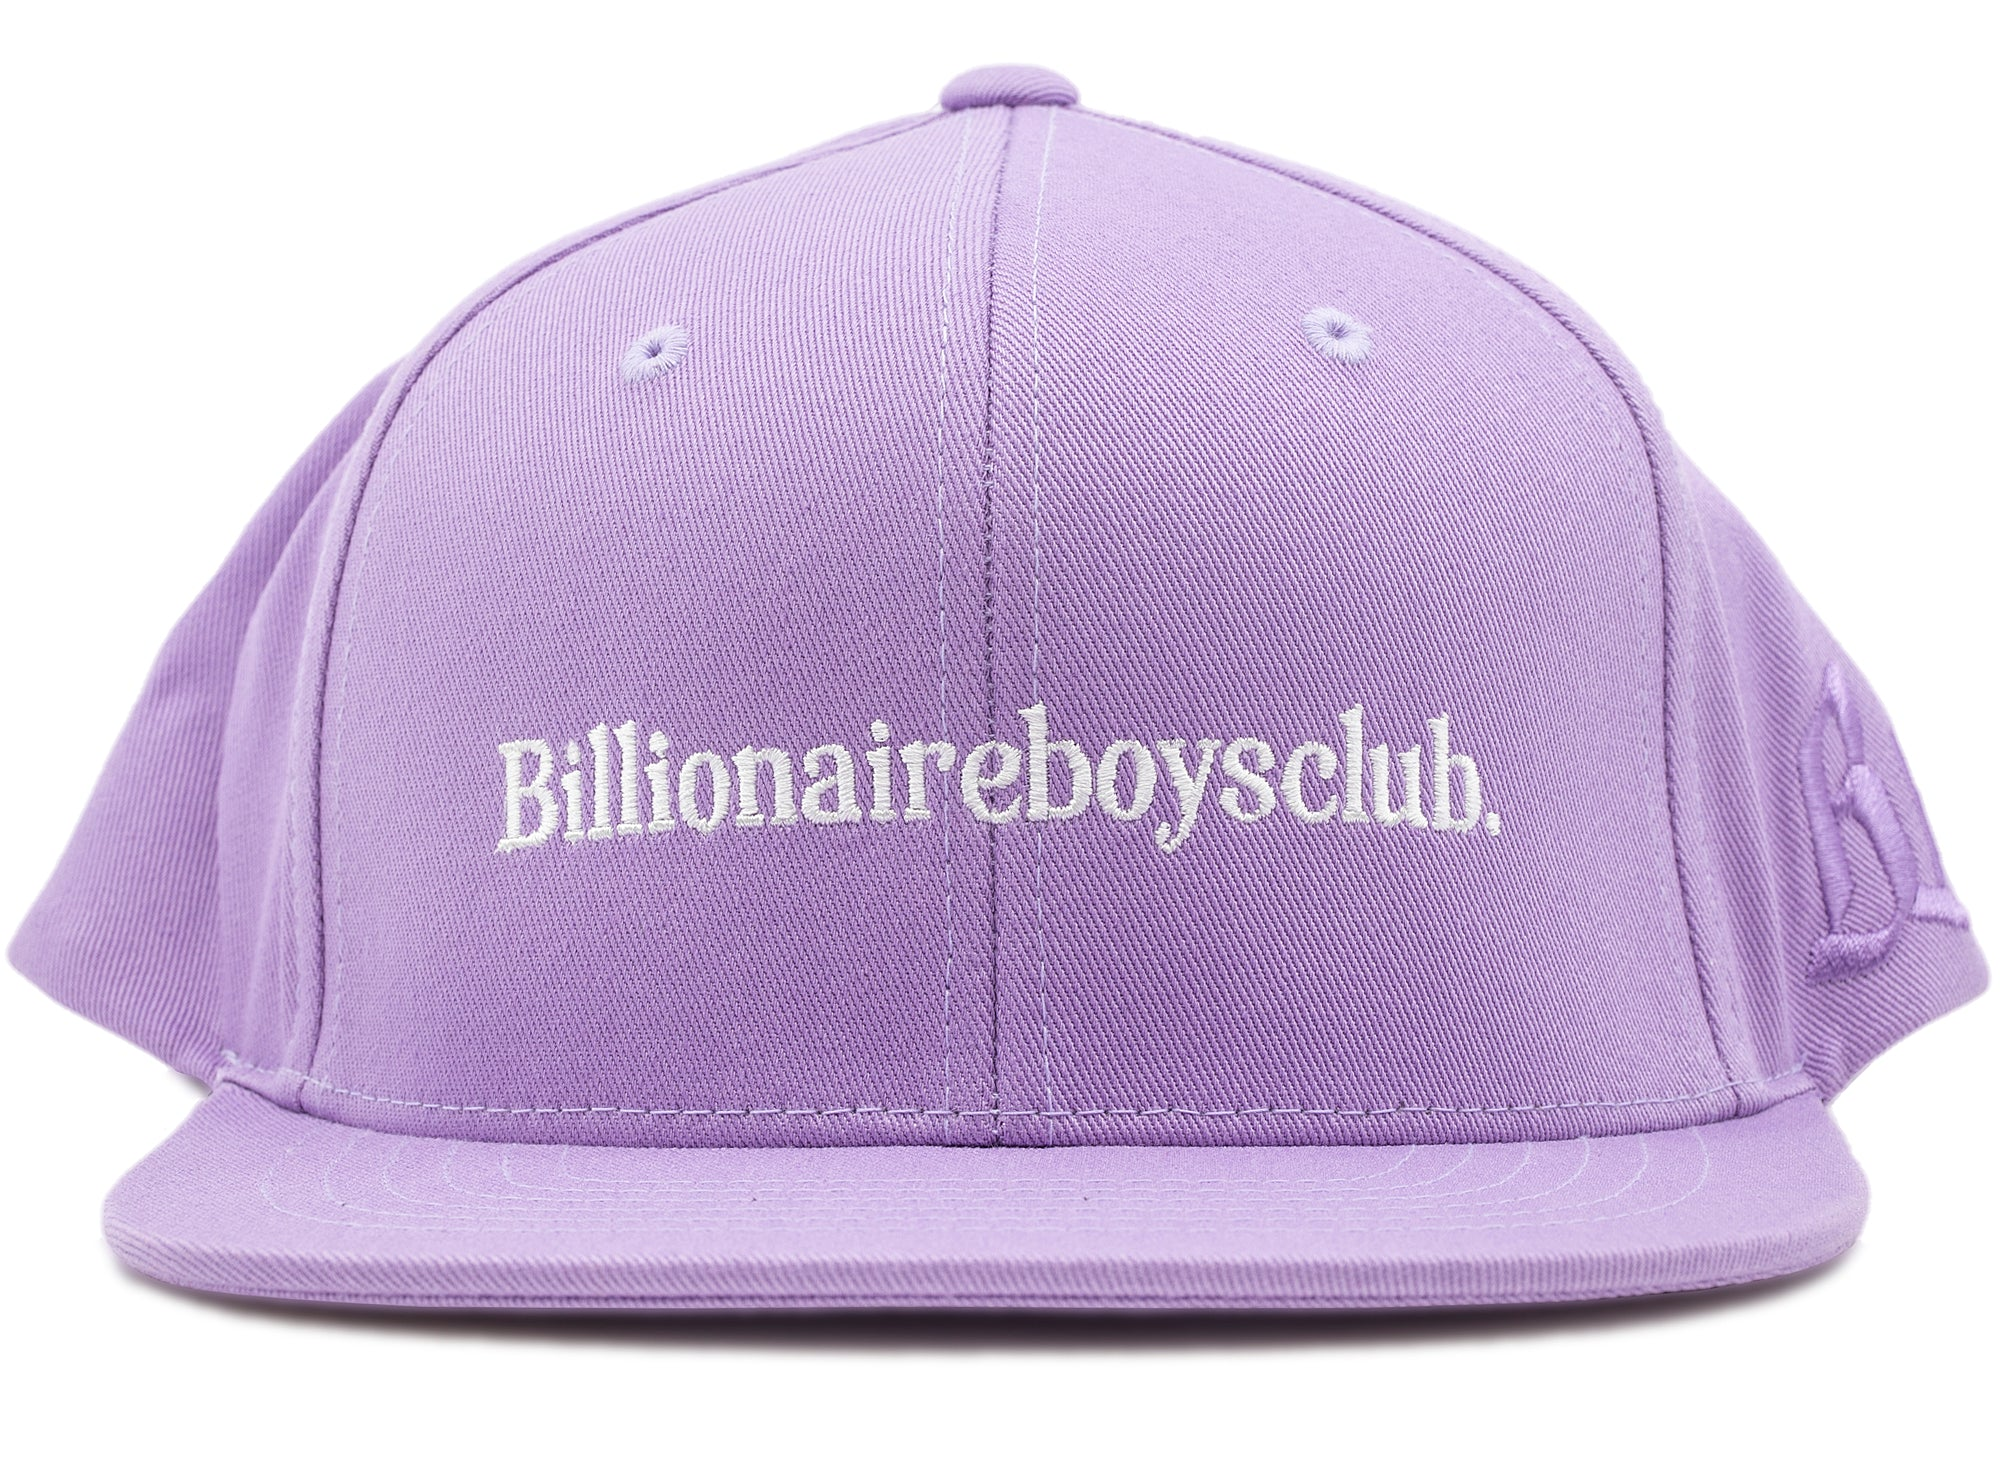 BBC Origins Panel Hat in Violet xld